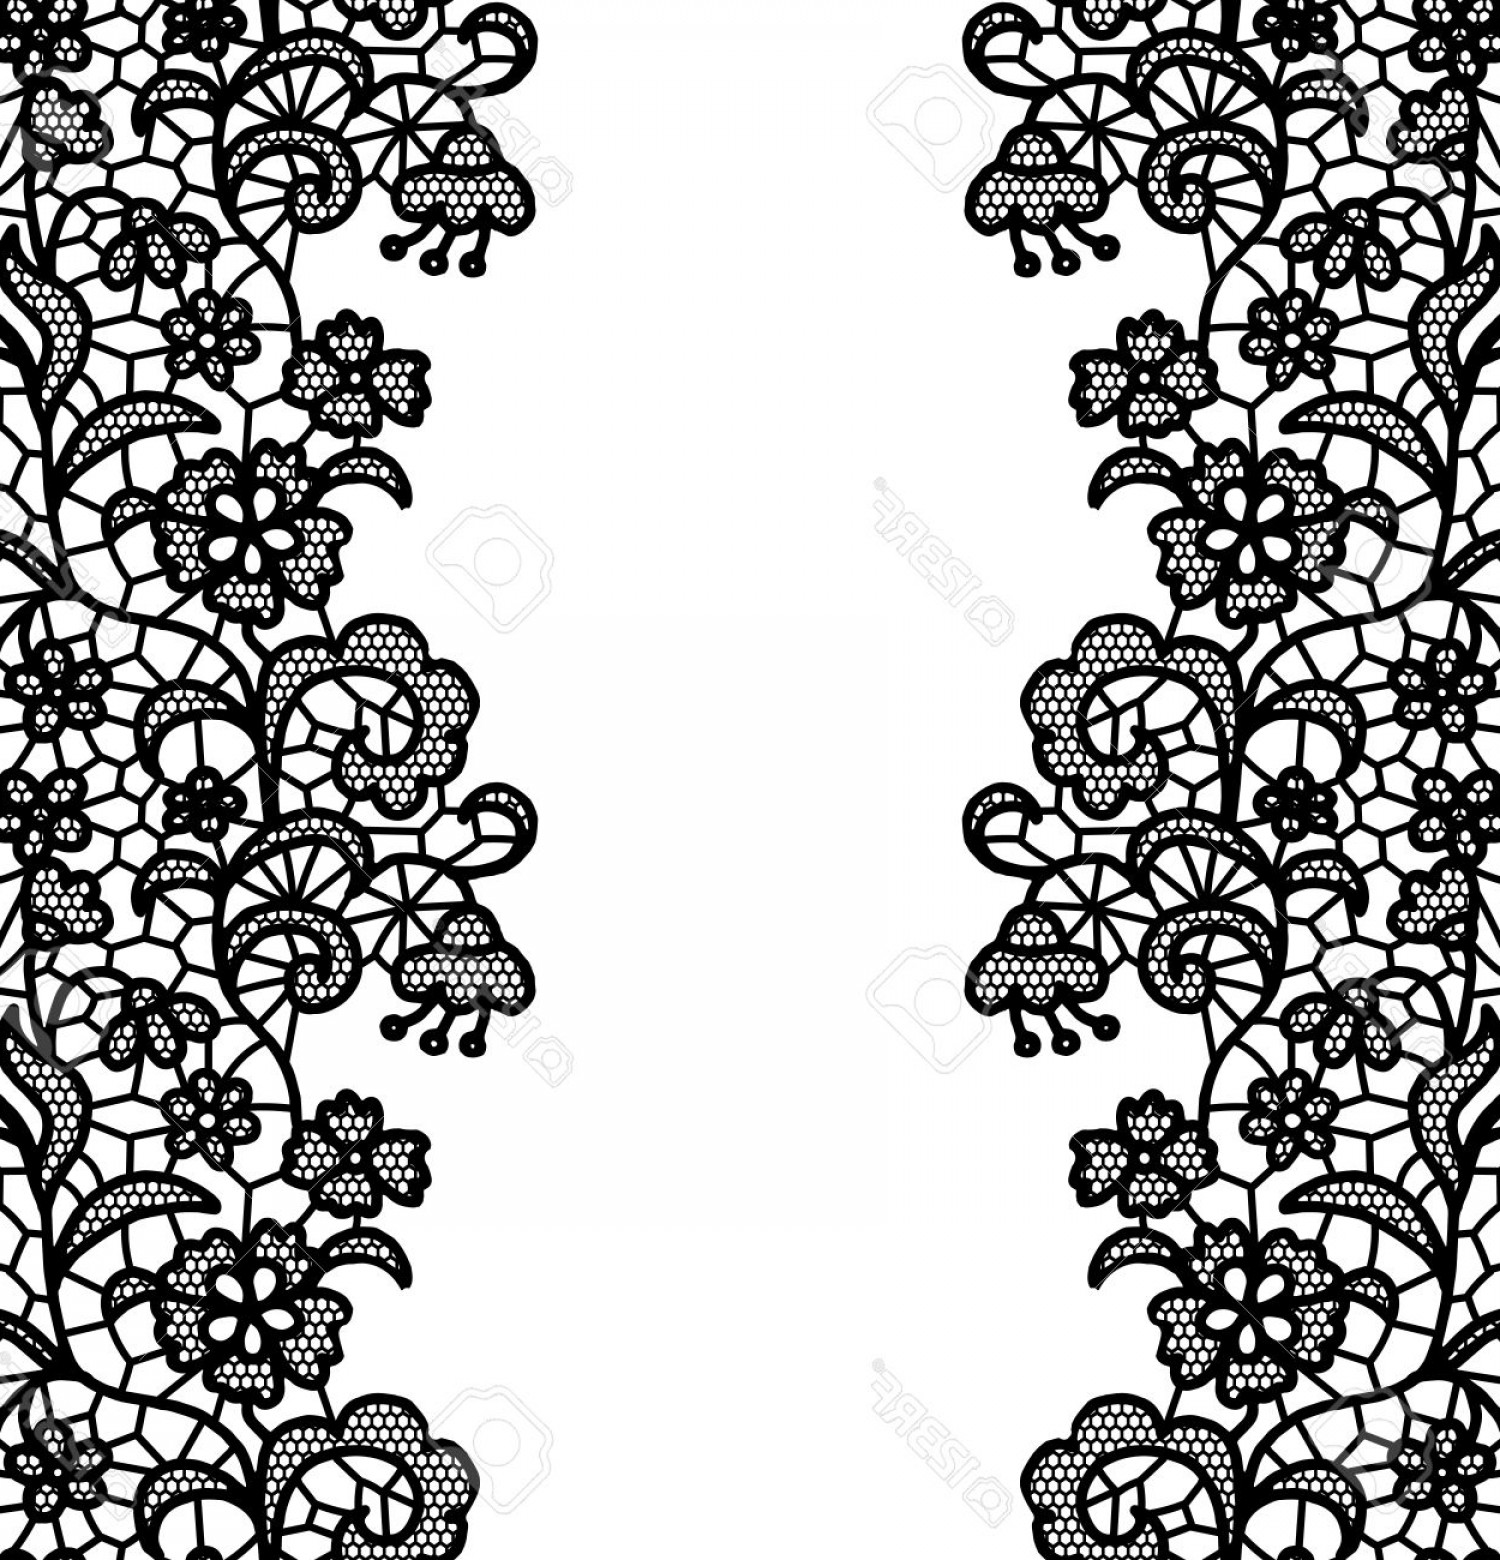 Floral Lace Trim Vector: Photostock Vector Seamless Lace Border Vector Illustration White Lacy Vintage Elegant Trim